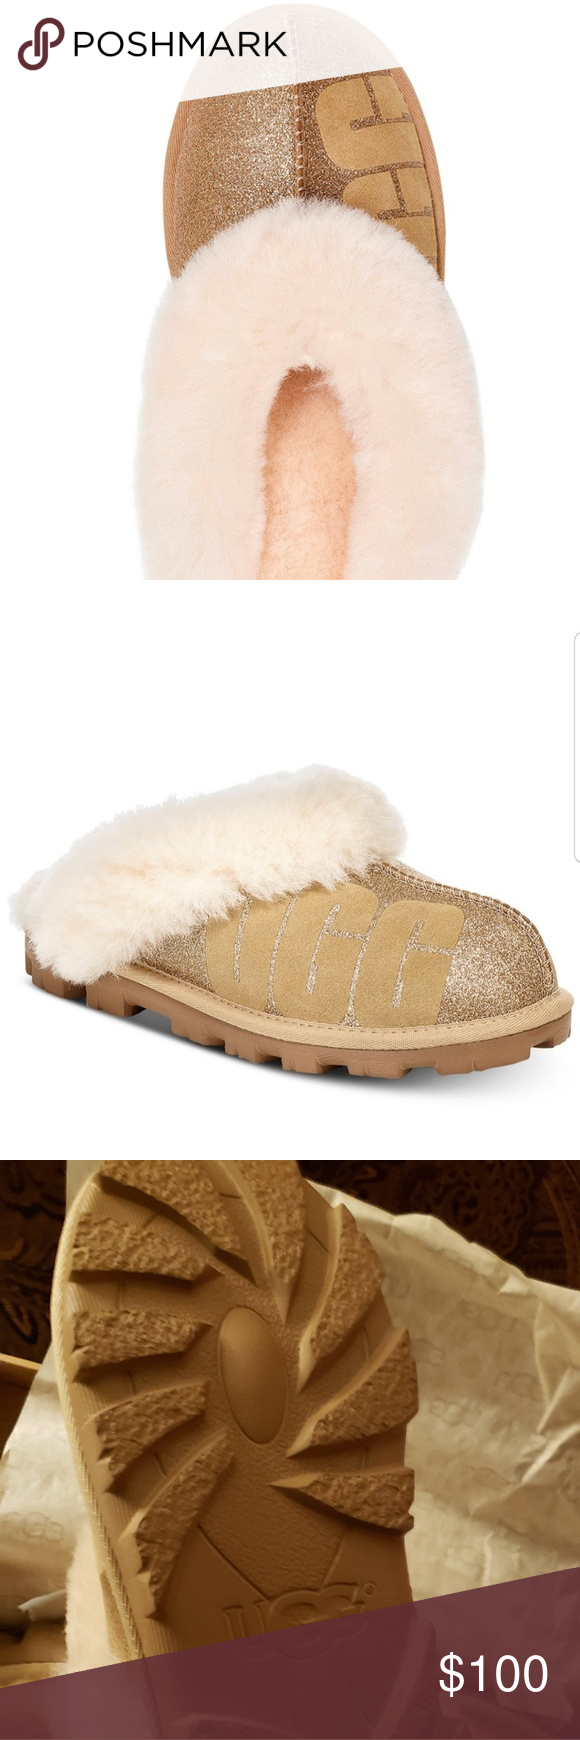 ce655858aa4 Ugg Coquette sparkle slippers. Size 7 Beautiful and authentic. Ugg ...